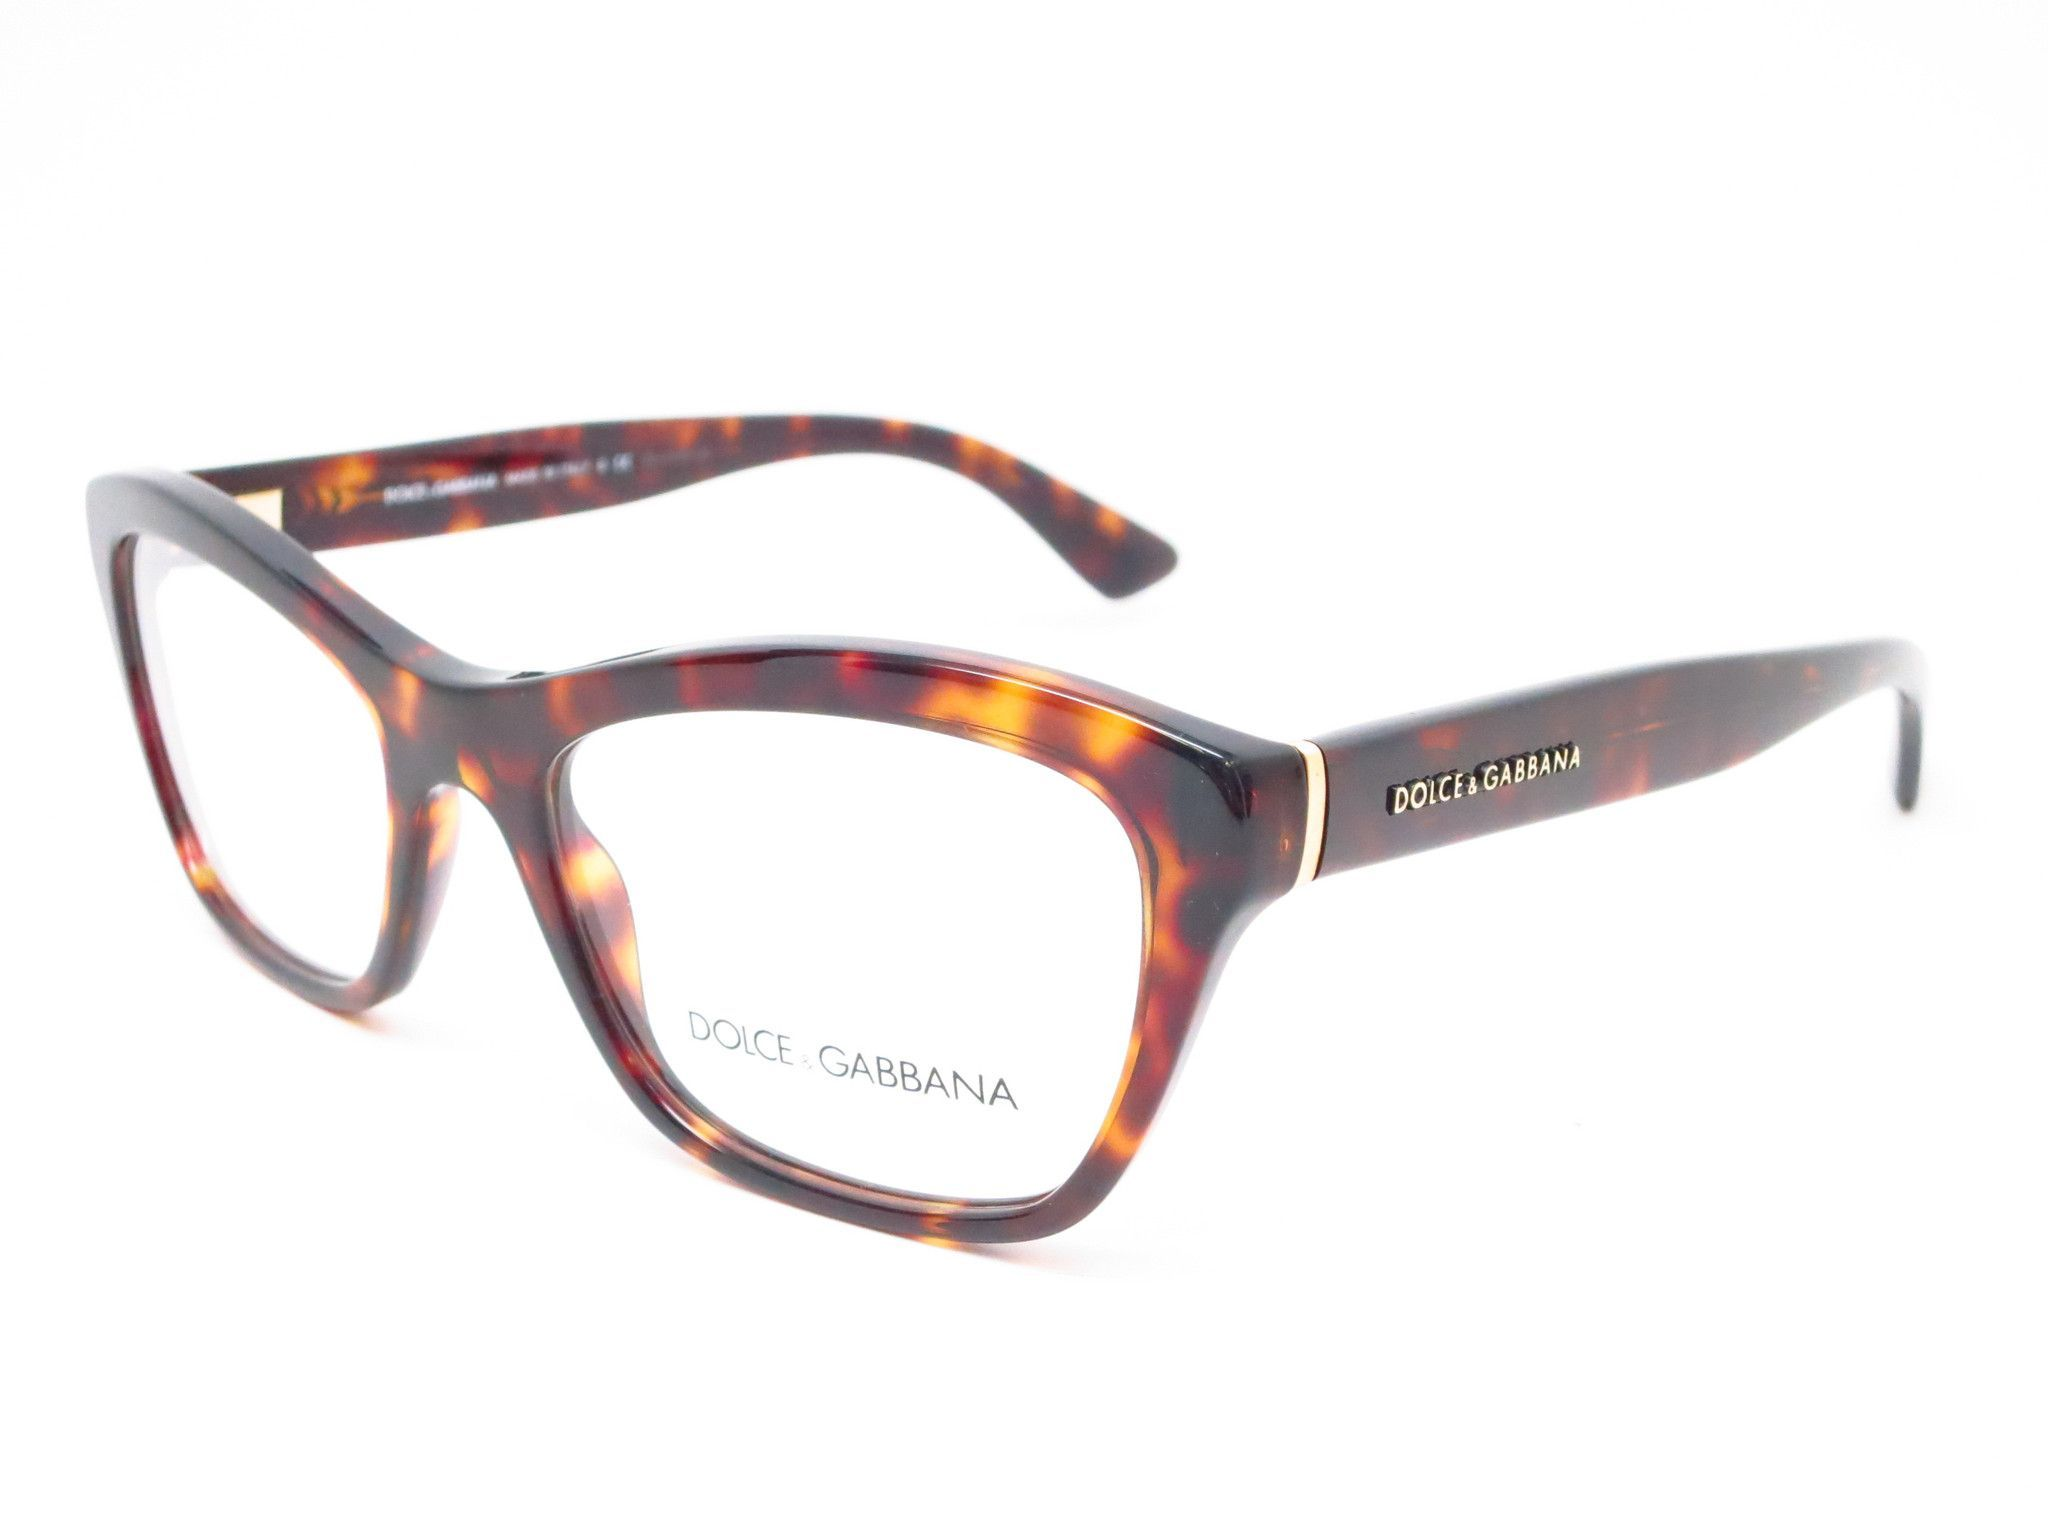 a16f336c Features of the Dolce & Gabbana DG 3198 - Acetate frames with a gloss  finish -